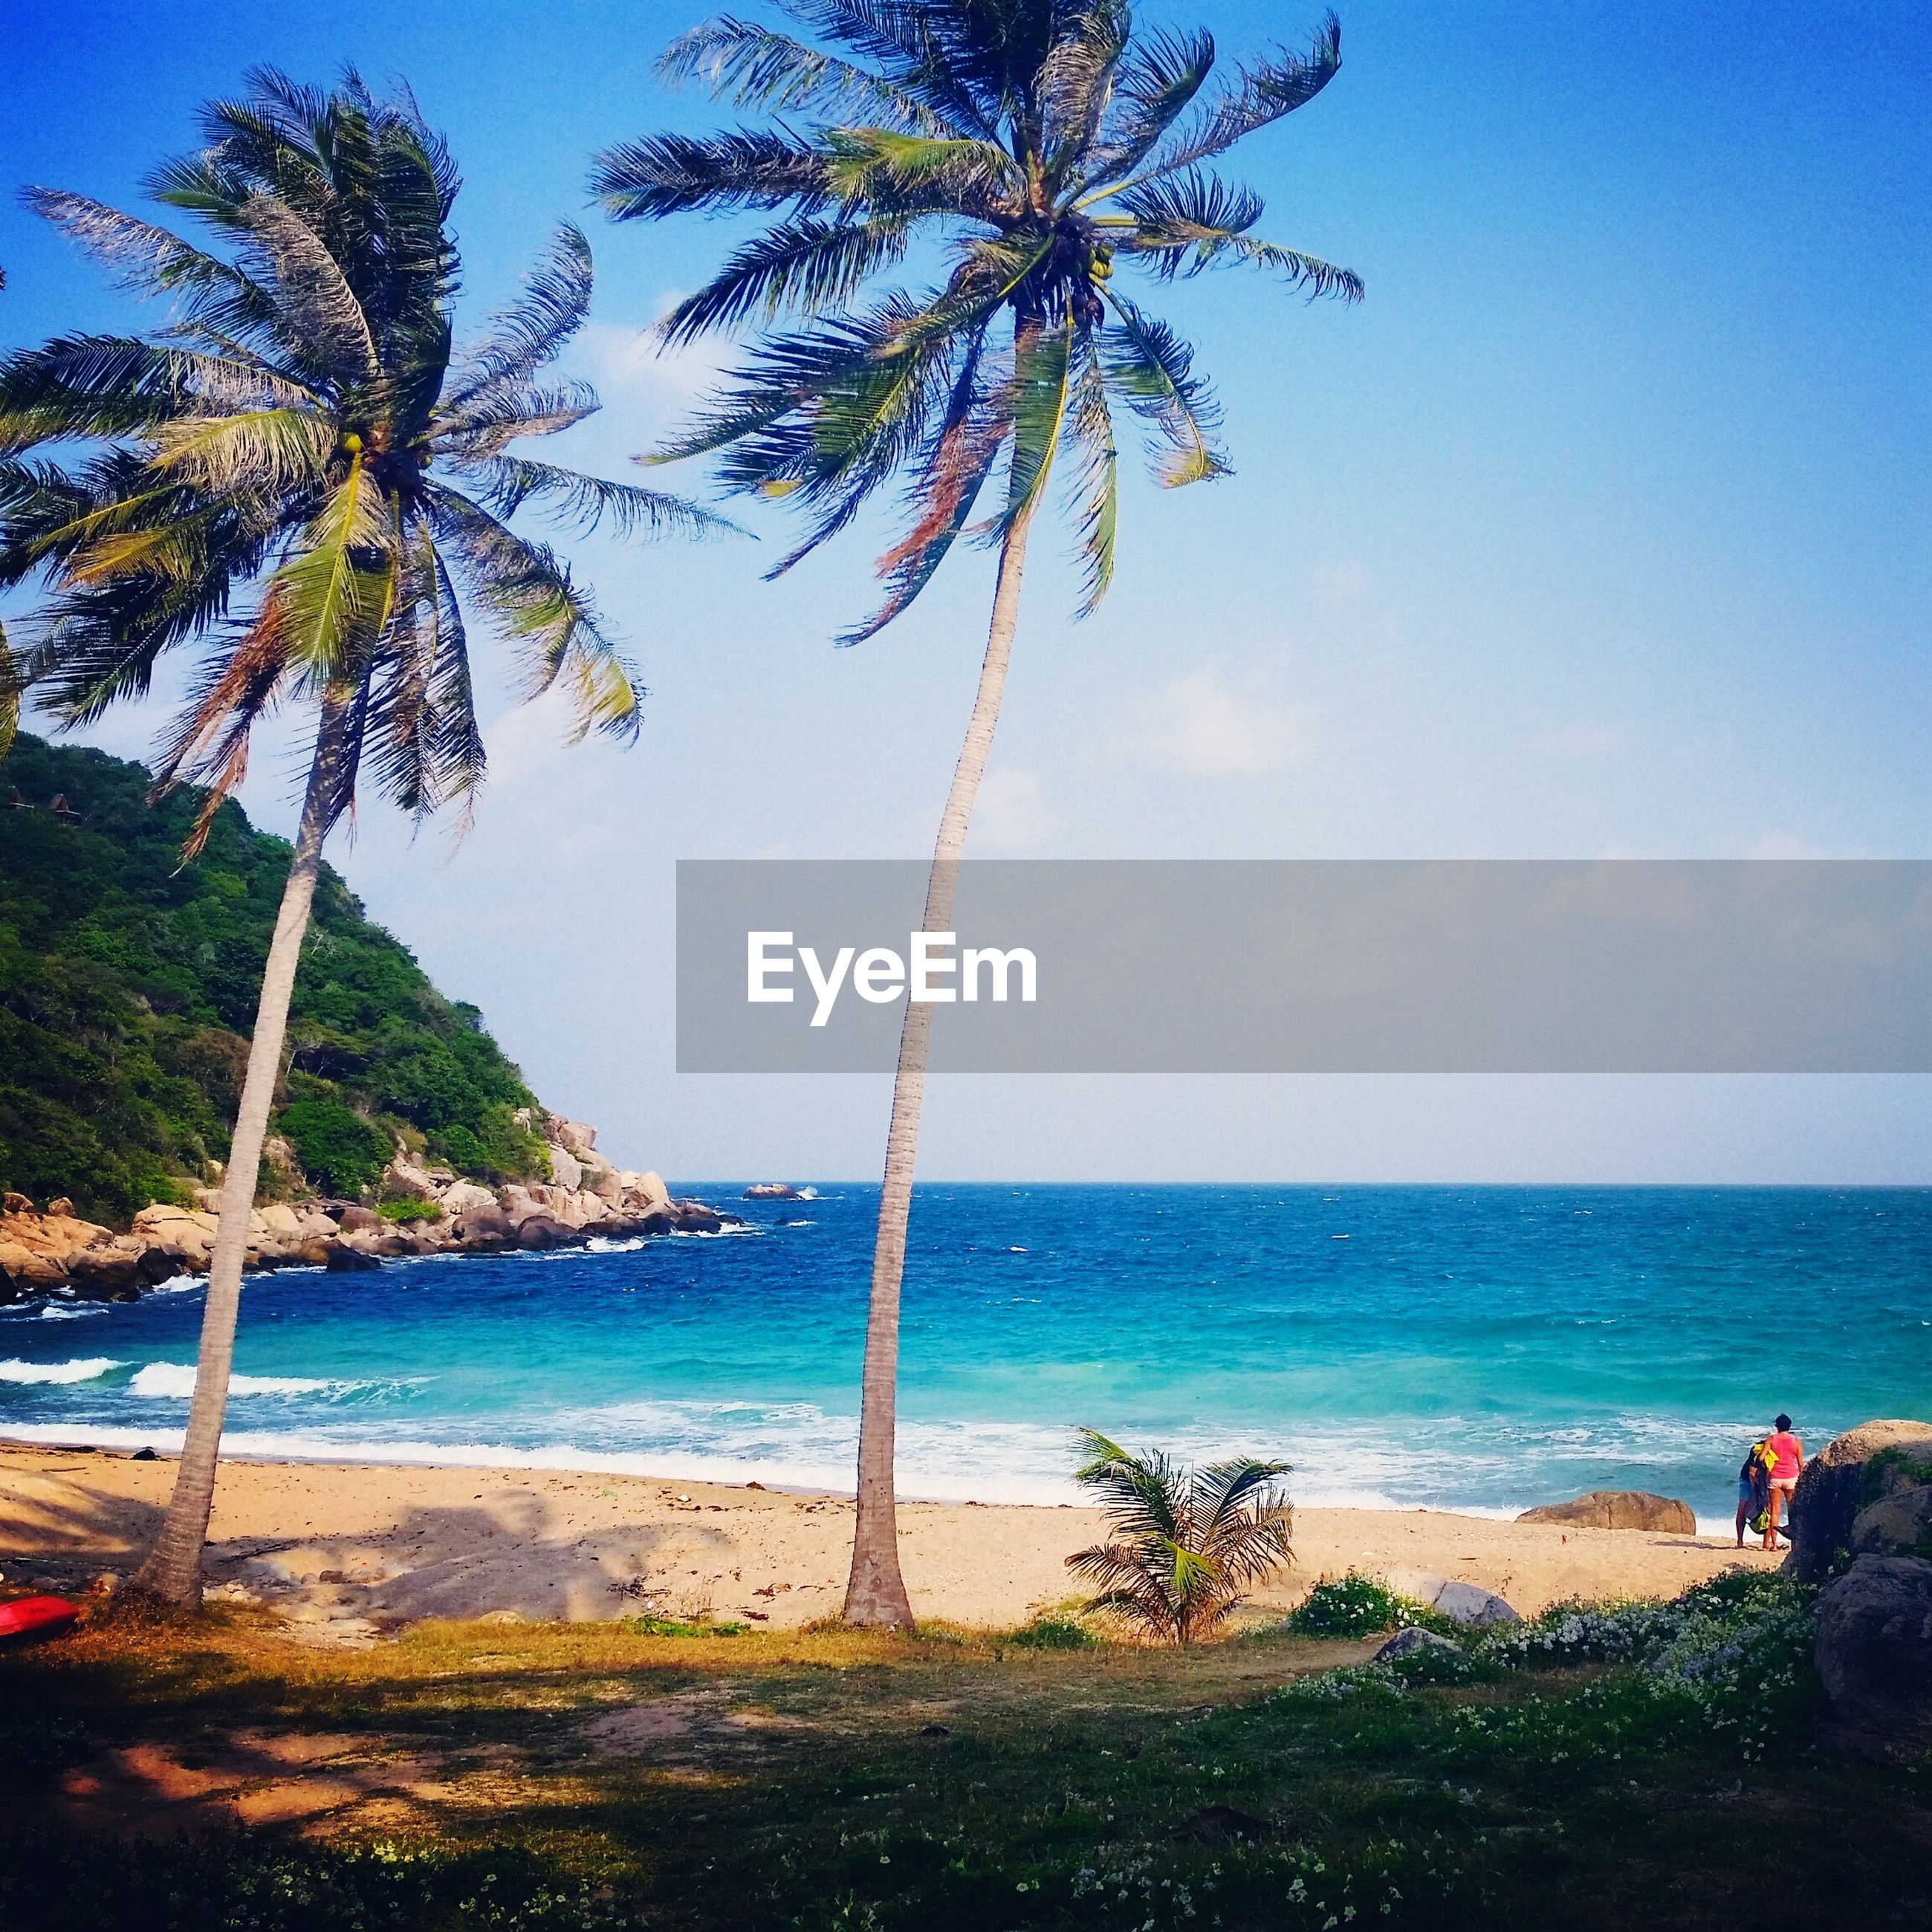 sea, horizon over water, water, beach, shore, tree, palm tree, scenics, tranquility, beauty in nature, tranquil scene, blue, sky, nature, sand, vacations, tree trunk, incidental people, idyllic, growth